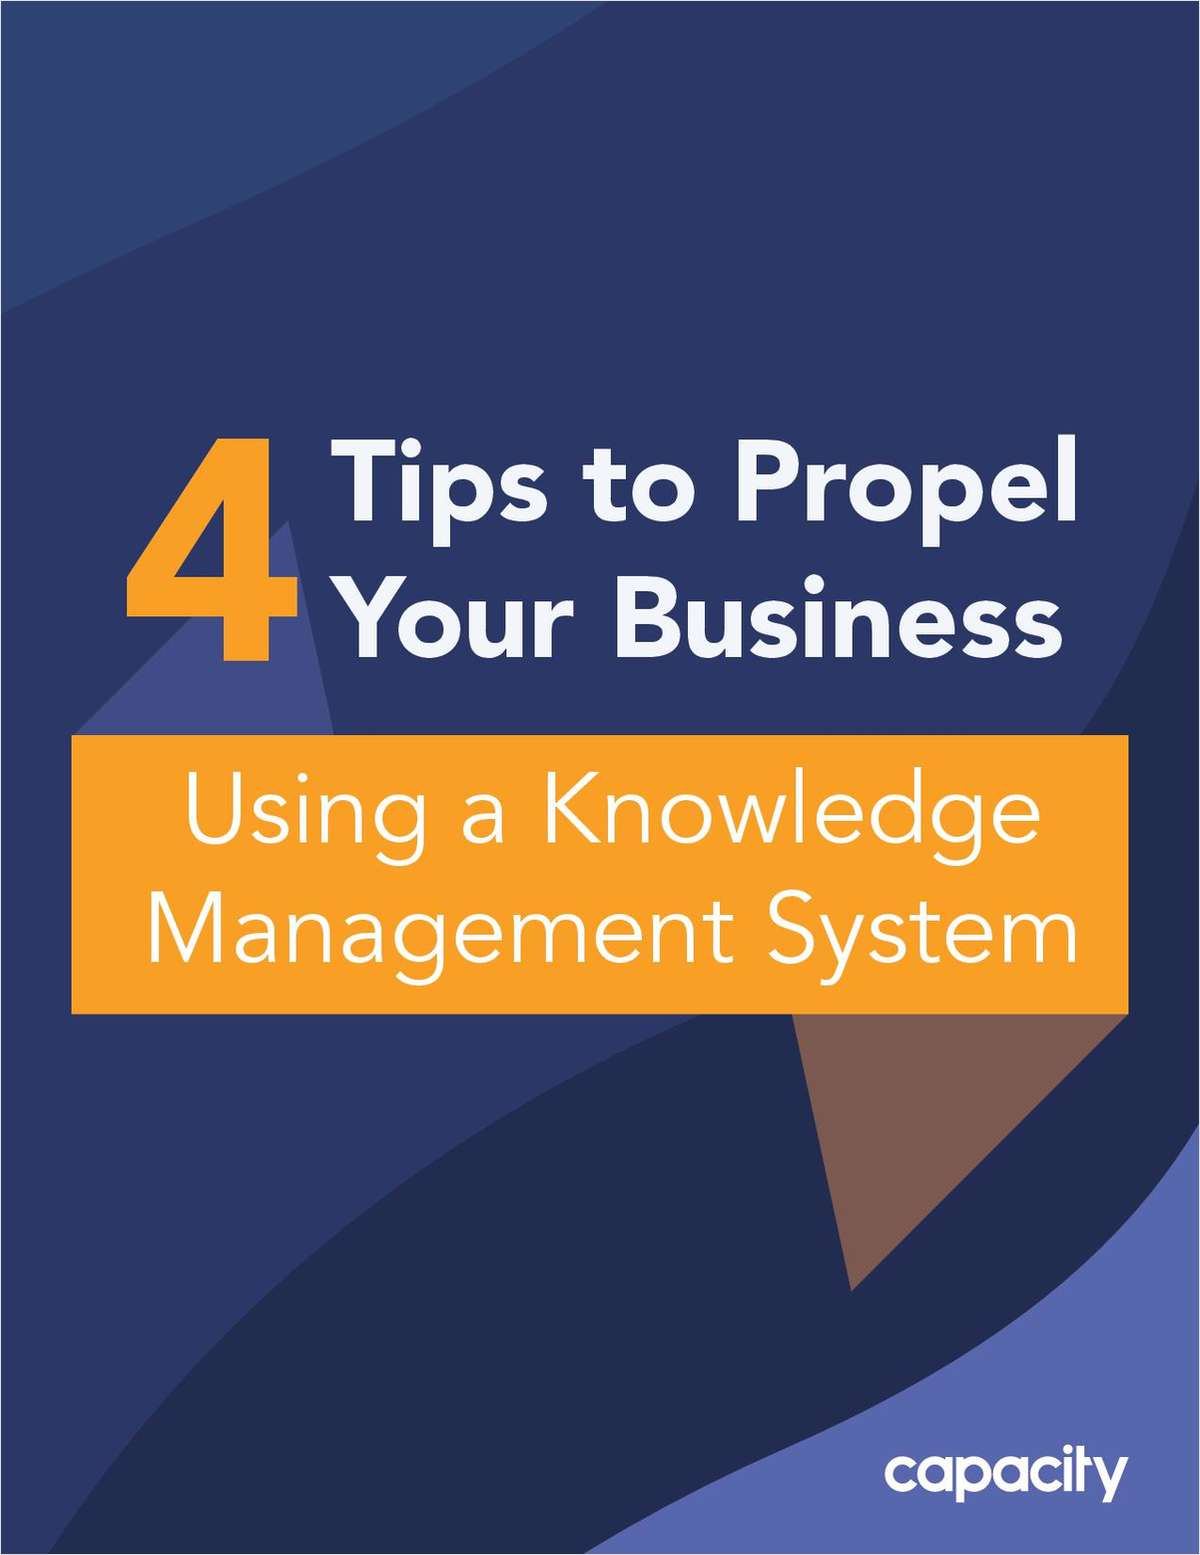 4 Tips to Propel Your Business Using a Knowledge Management System